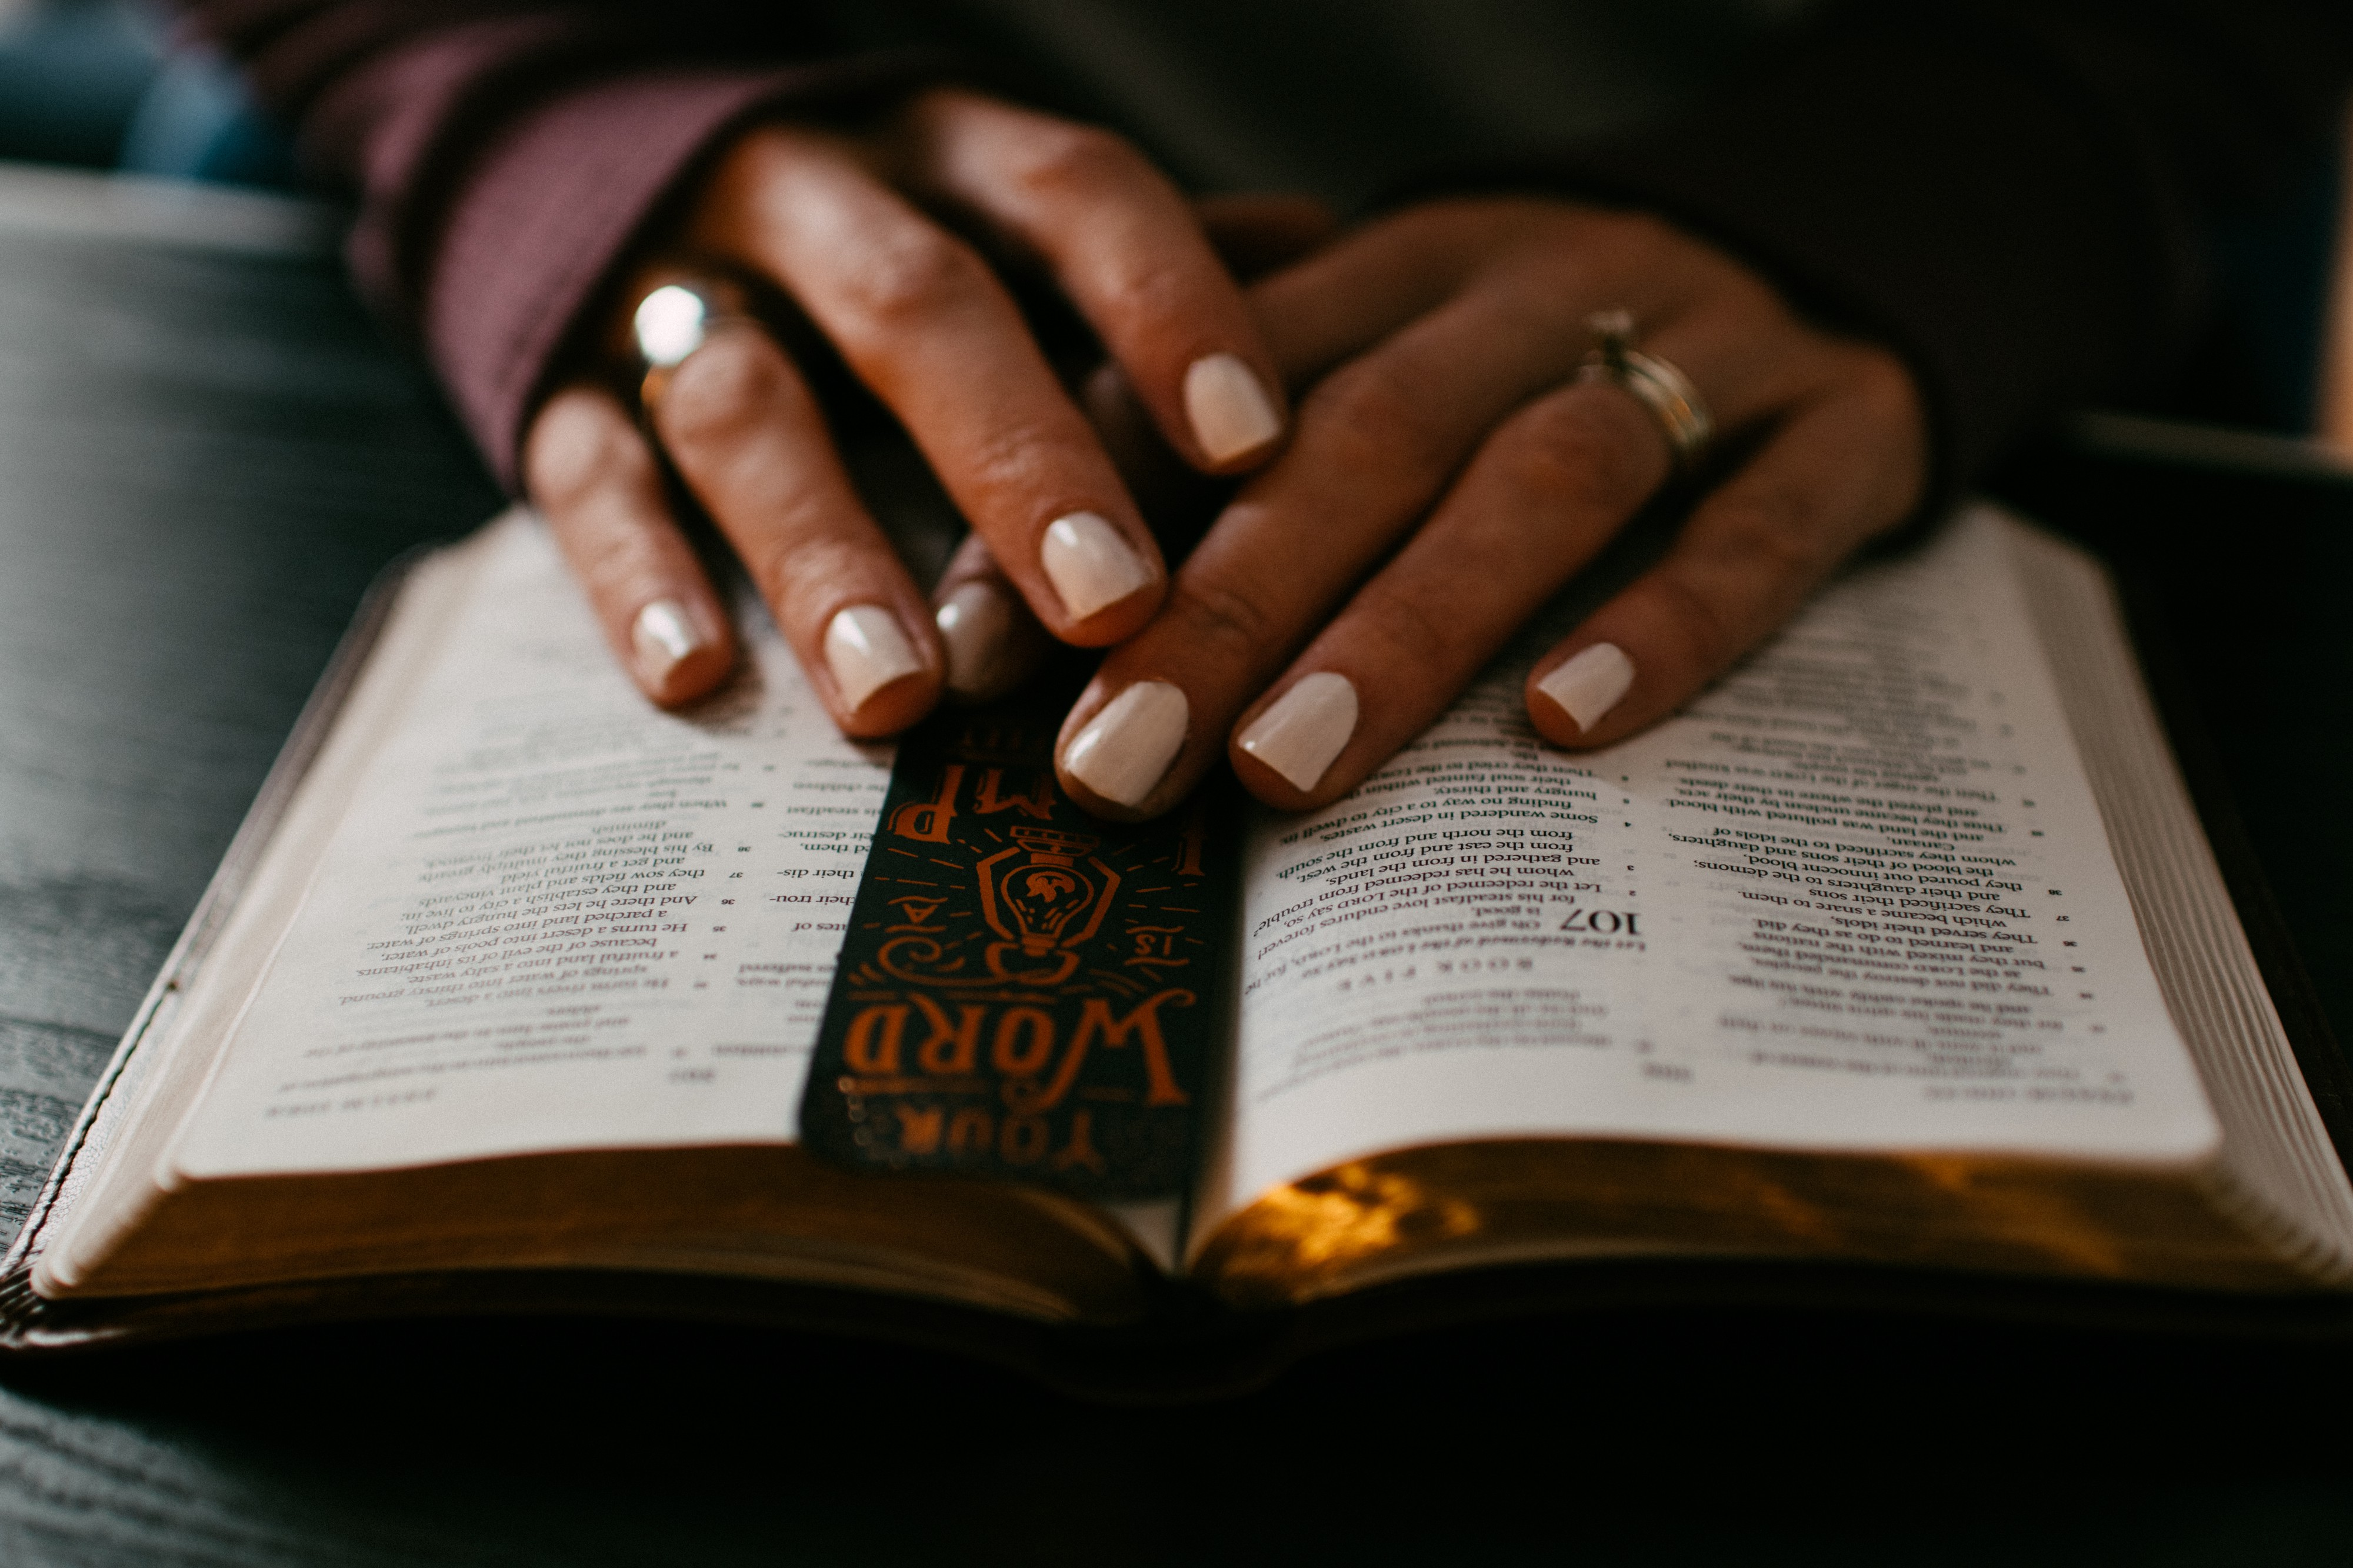 Woman's manicured hands on an open book with a black bookmark visible. Edges of pages are gold—colored. Woman wears rings.